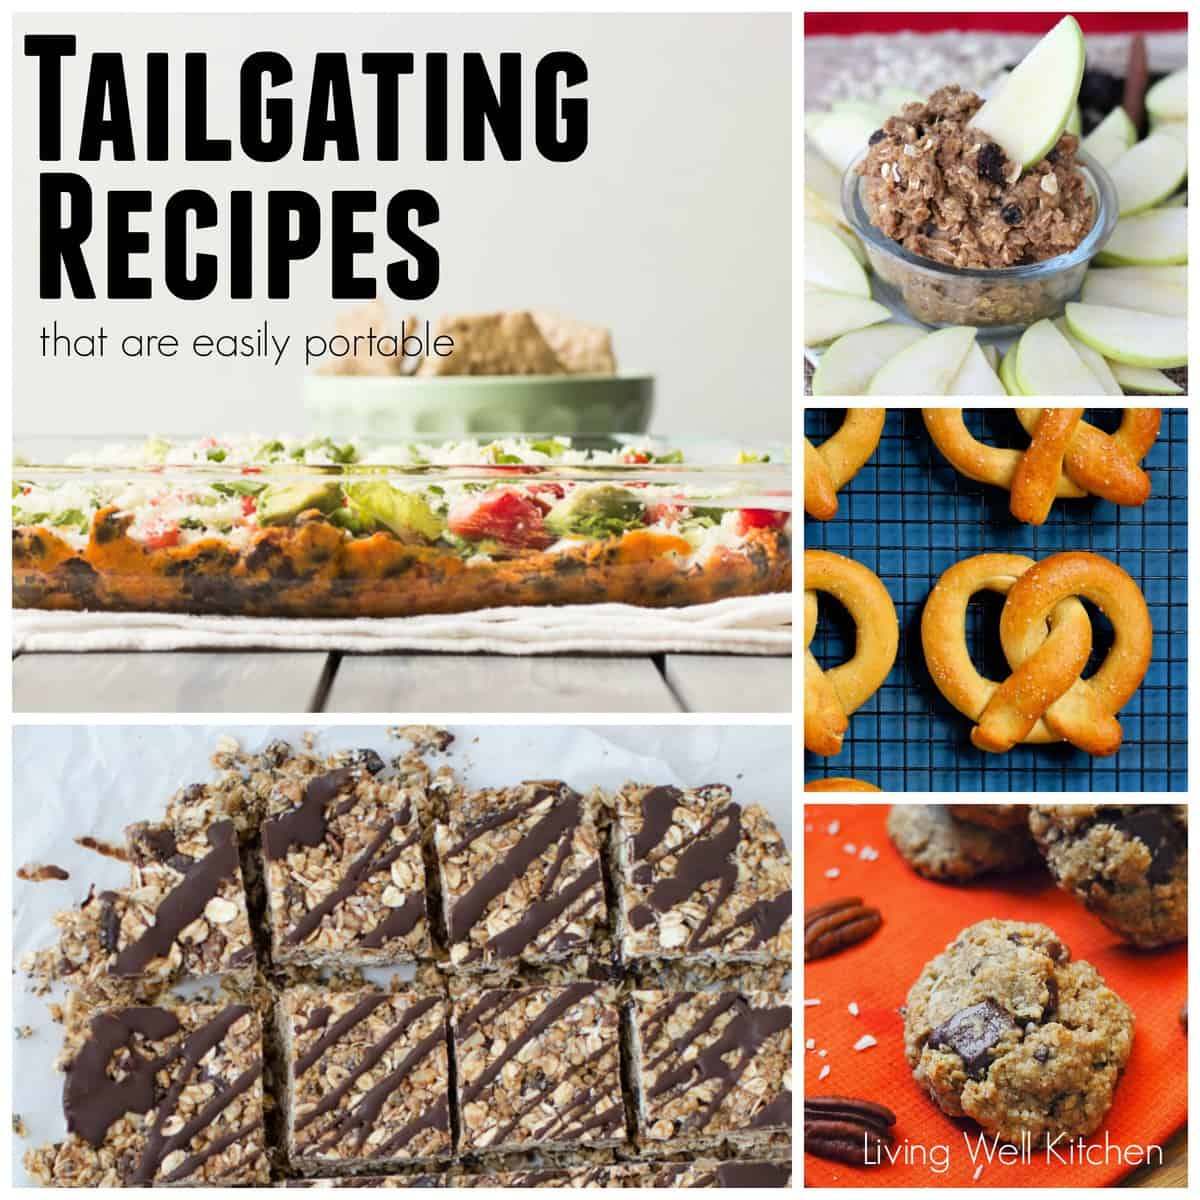 Tailgating Recipes that are easily Portable from Living Well Kitchen @memeinge